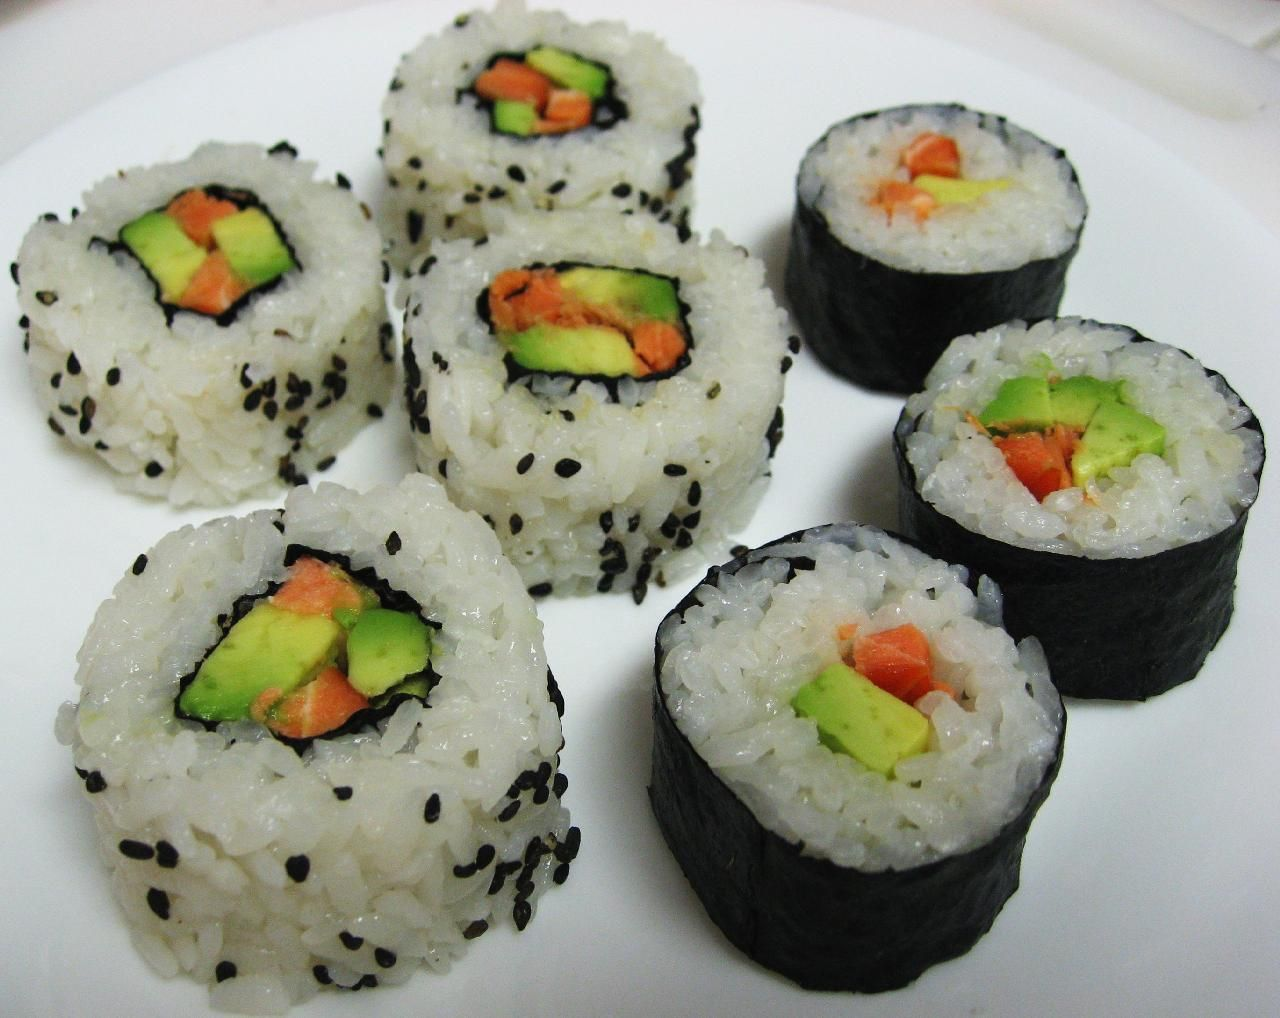 My favorite sushis greed is good ricette sushi for Ricette asiatiche